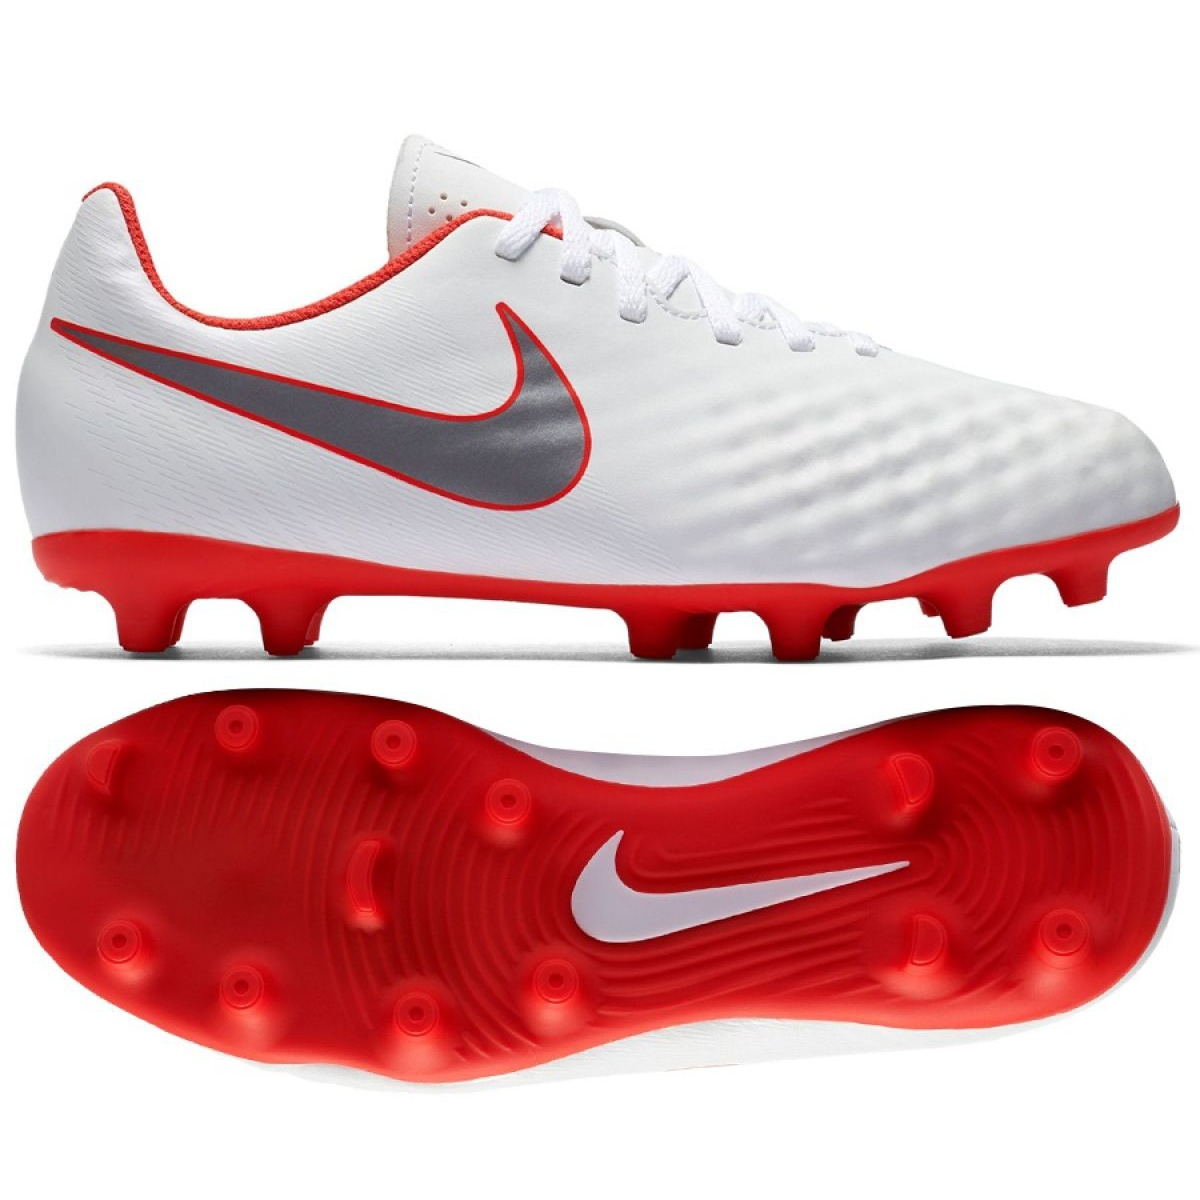 Unboxing NEW 2017 NIKE MAGISTAX PROXIMO II TF Soccer